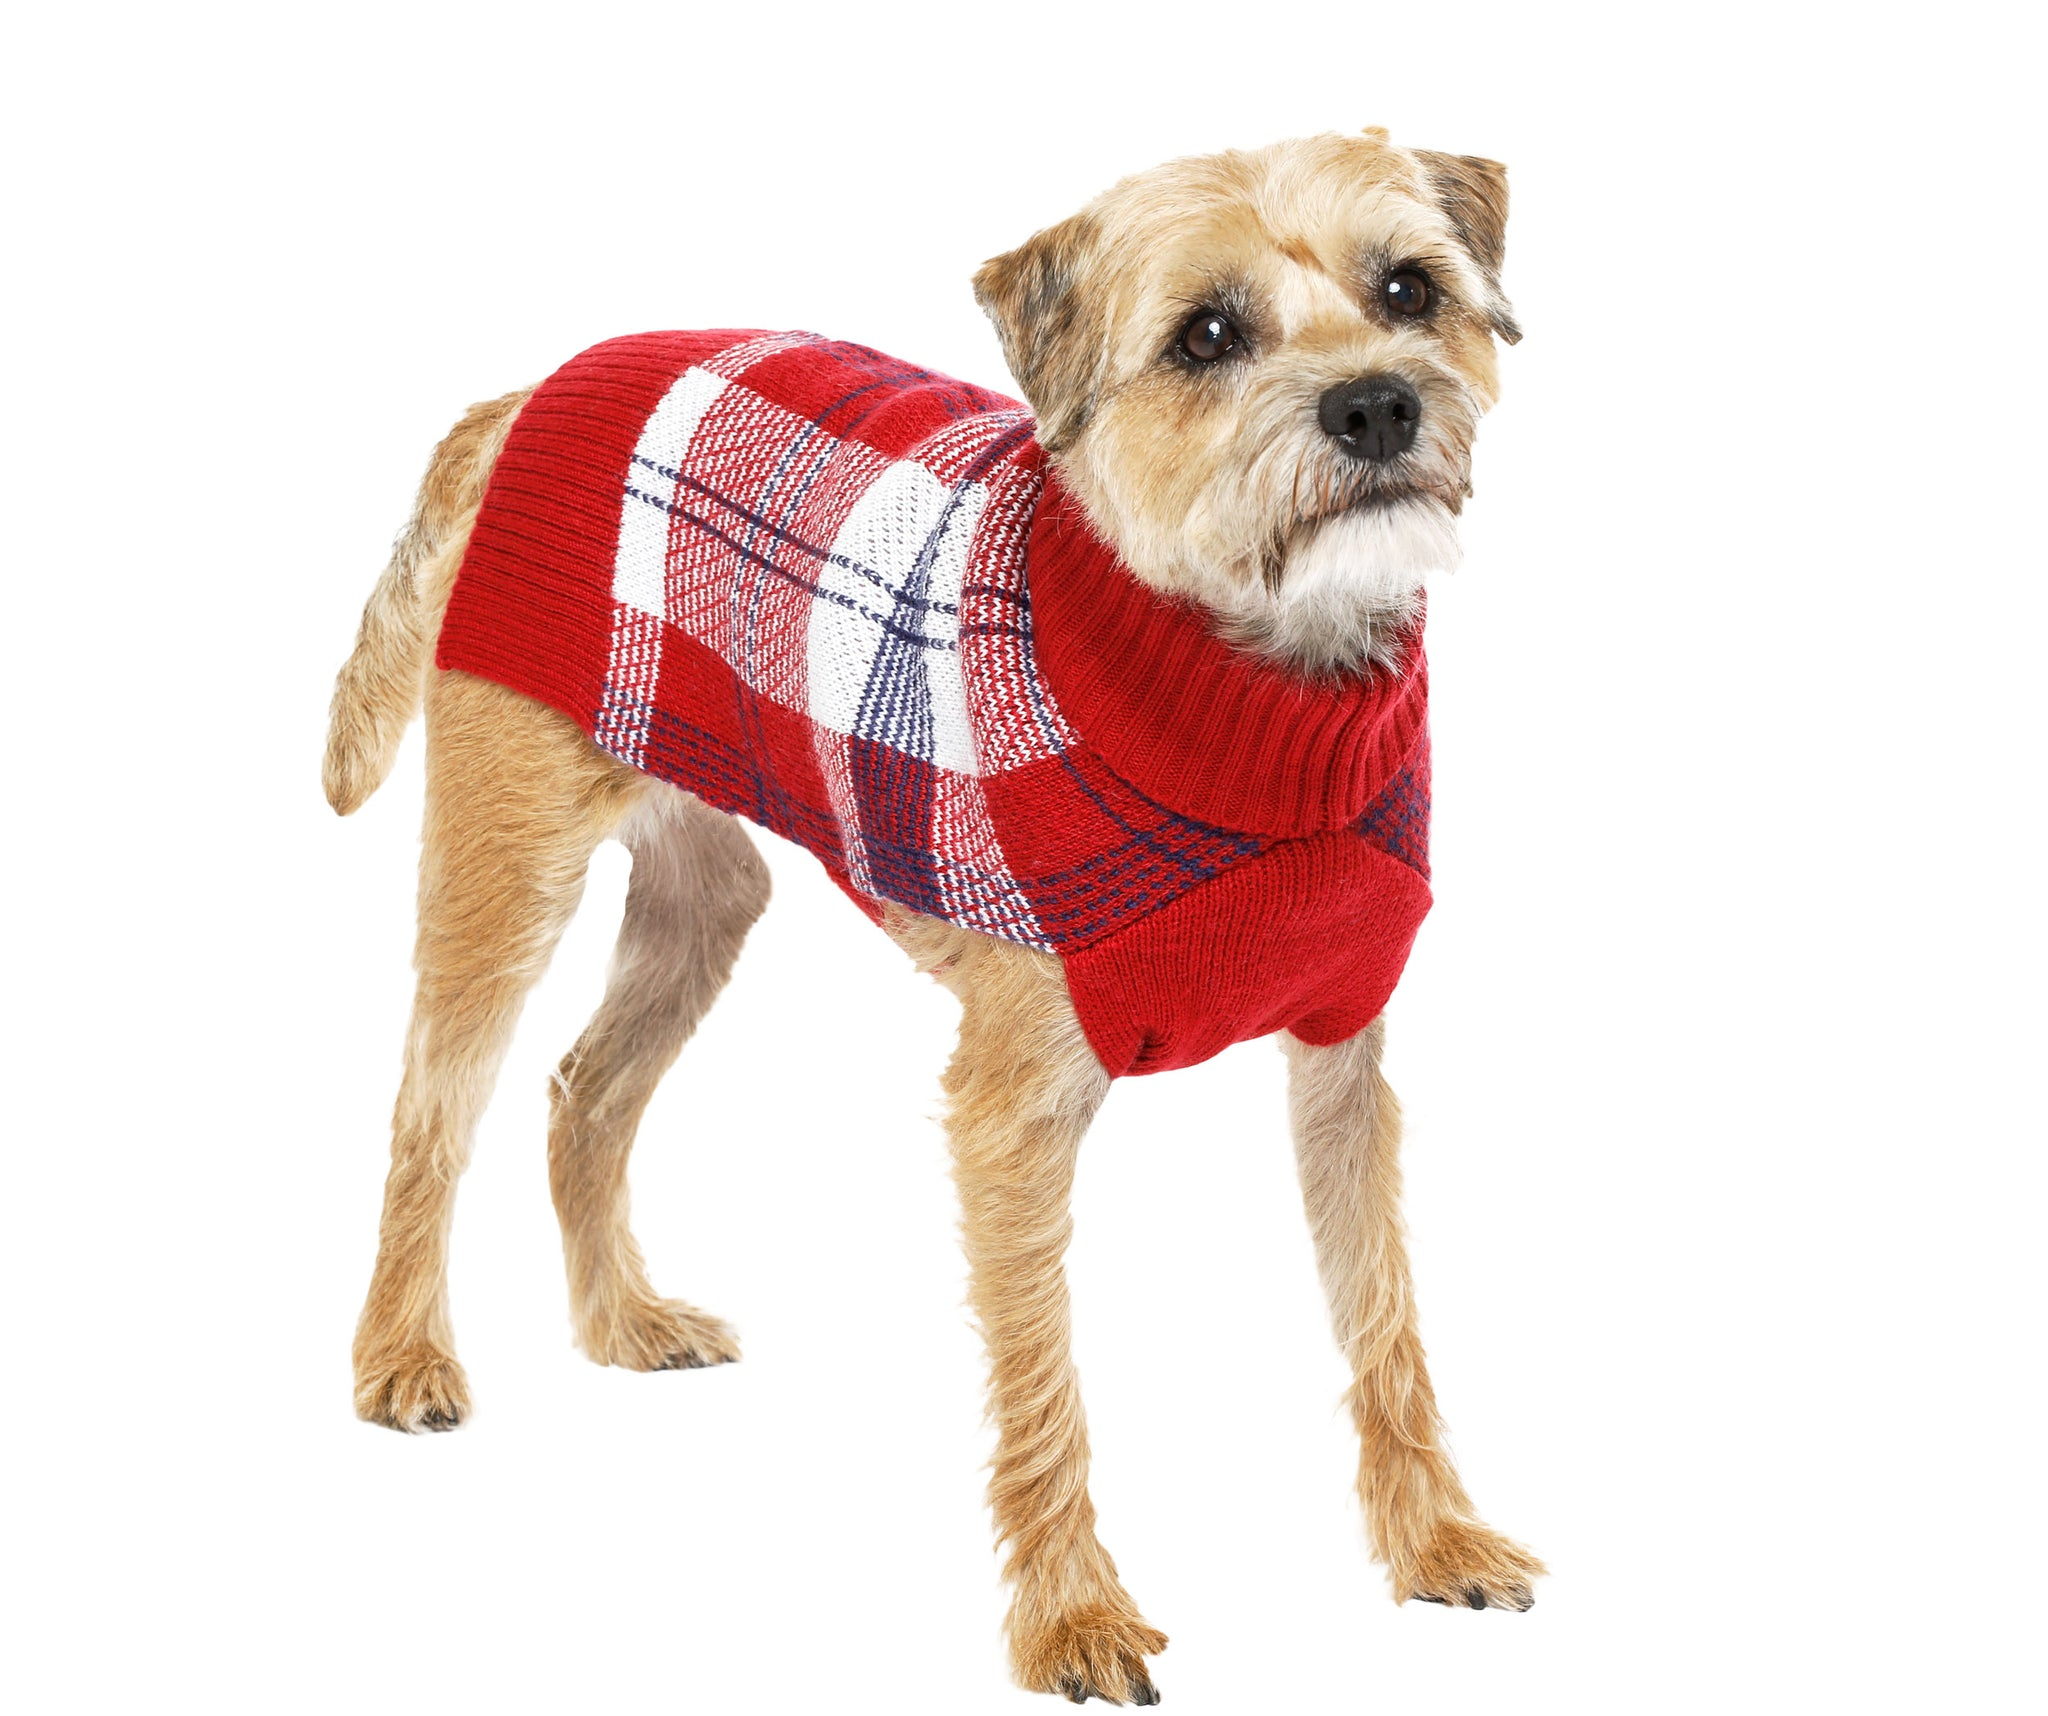 Wool - Blackcomb Plaid Dog Sweaters